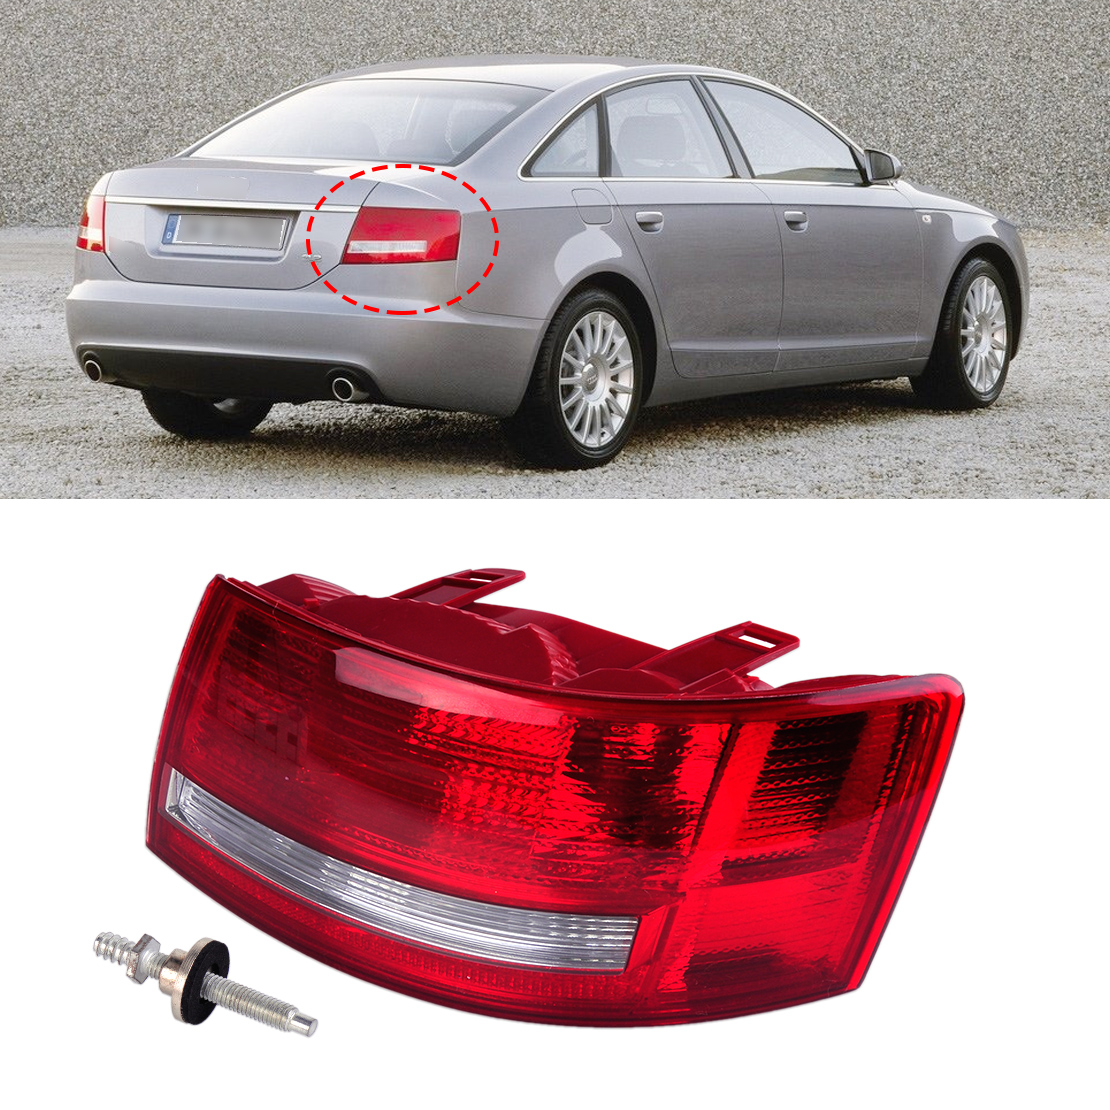 ФОТО Rear Right Light Assembly Lamp Housing without Bulb 4F5 945 096 L 4F5 945 096 D fit for Audi A6 /A6 Quattro Sedan 2005 2006 -08